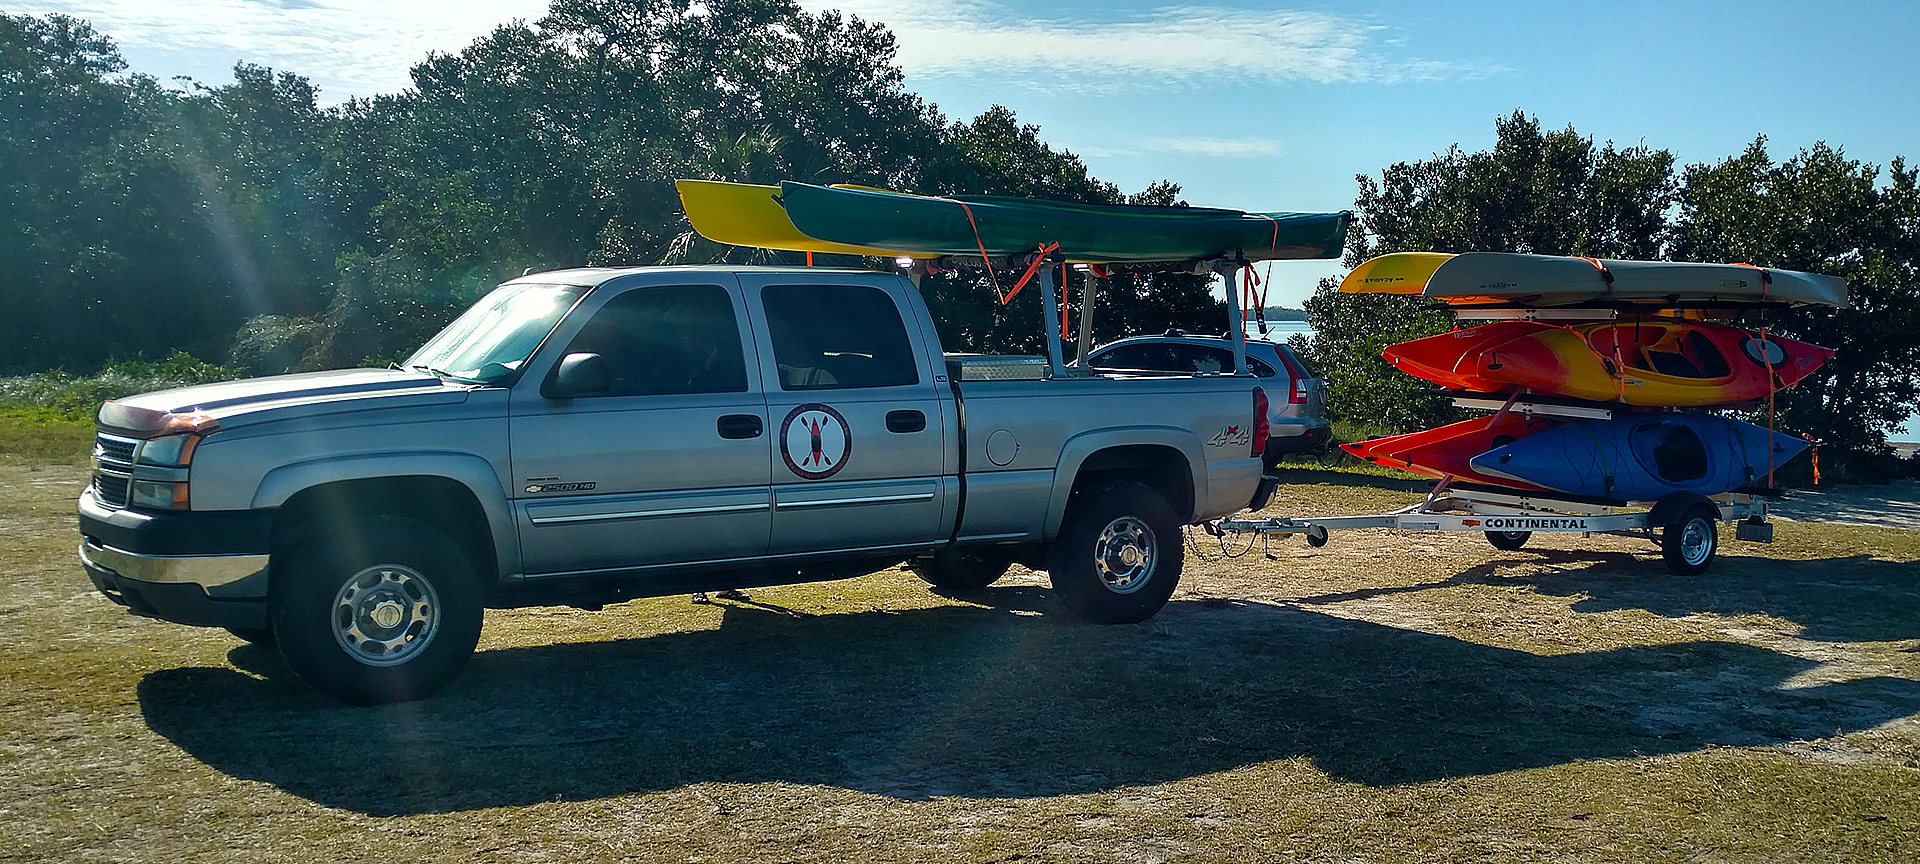 Island Kayak Tours Launch Site